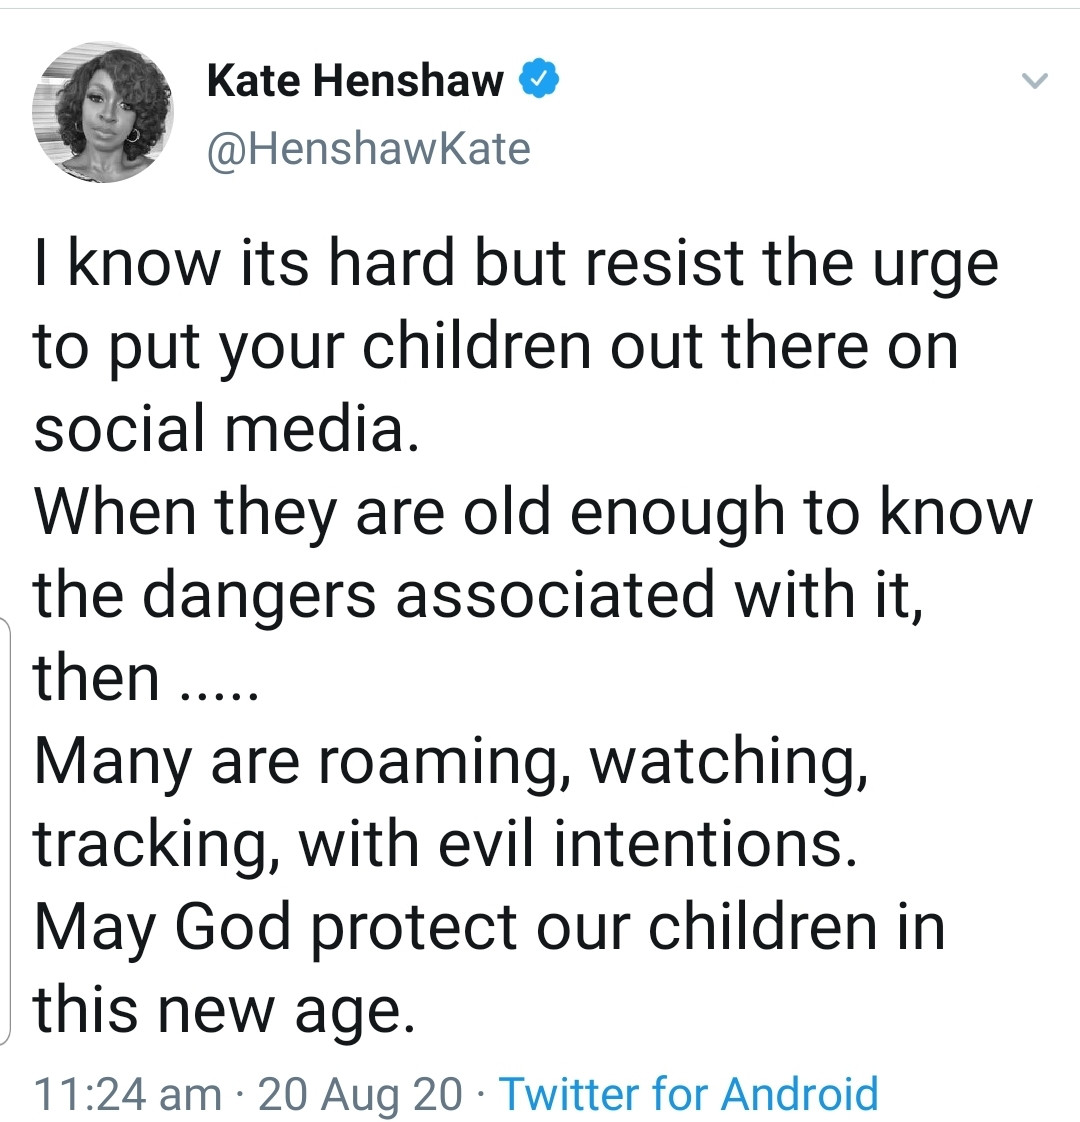 Resist the urge to put your children out there on social media- Kate Henshaw cautions parents